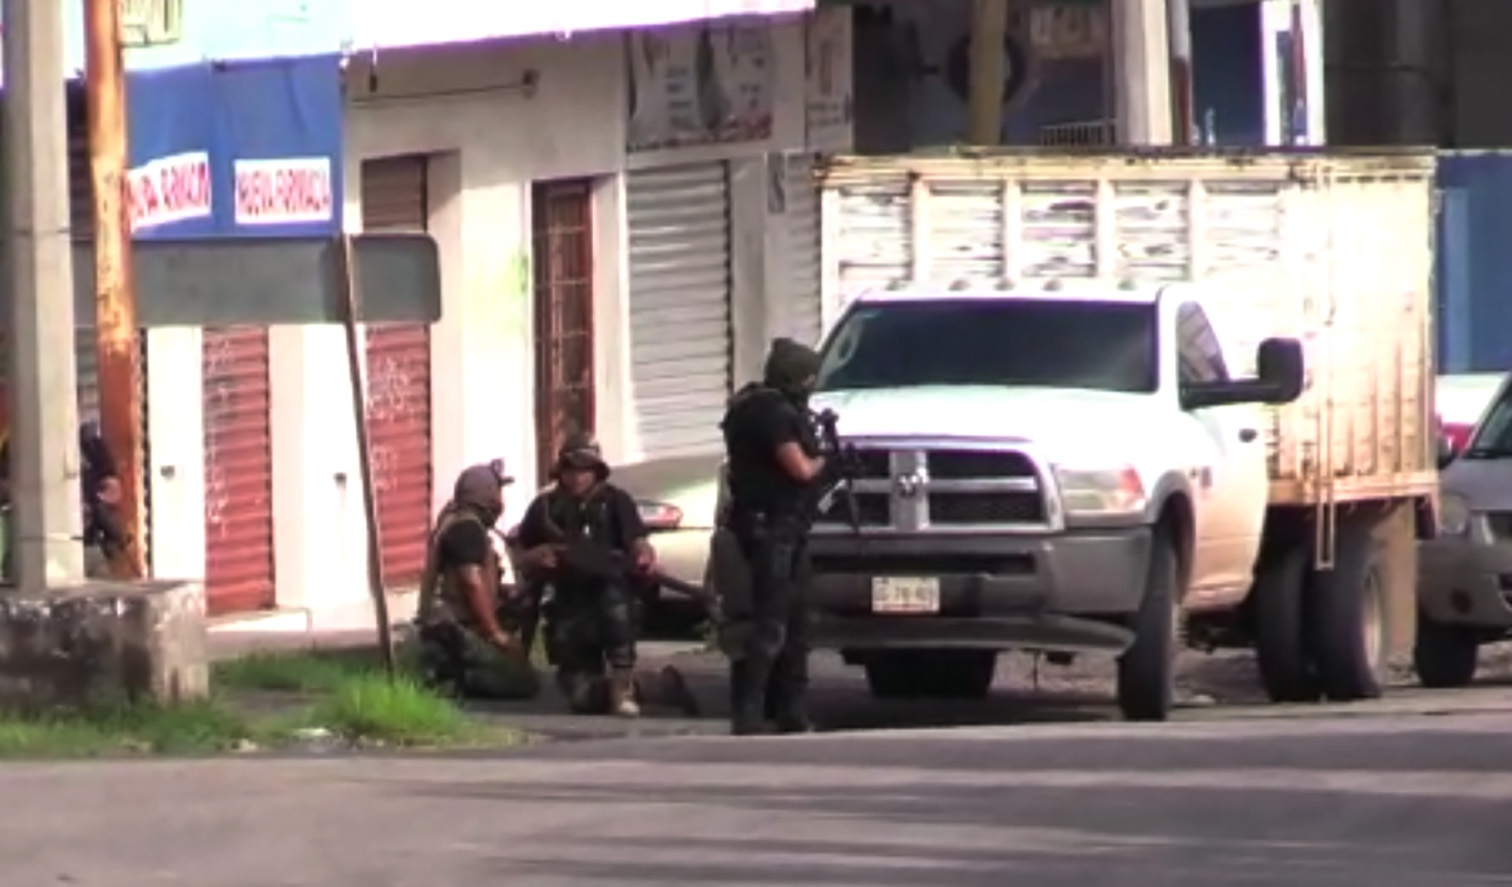 El Chapo's son involved in police shootout